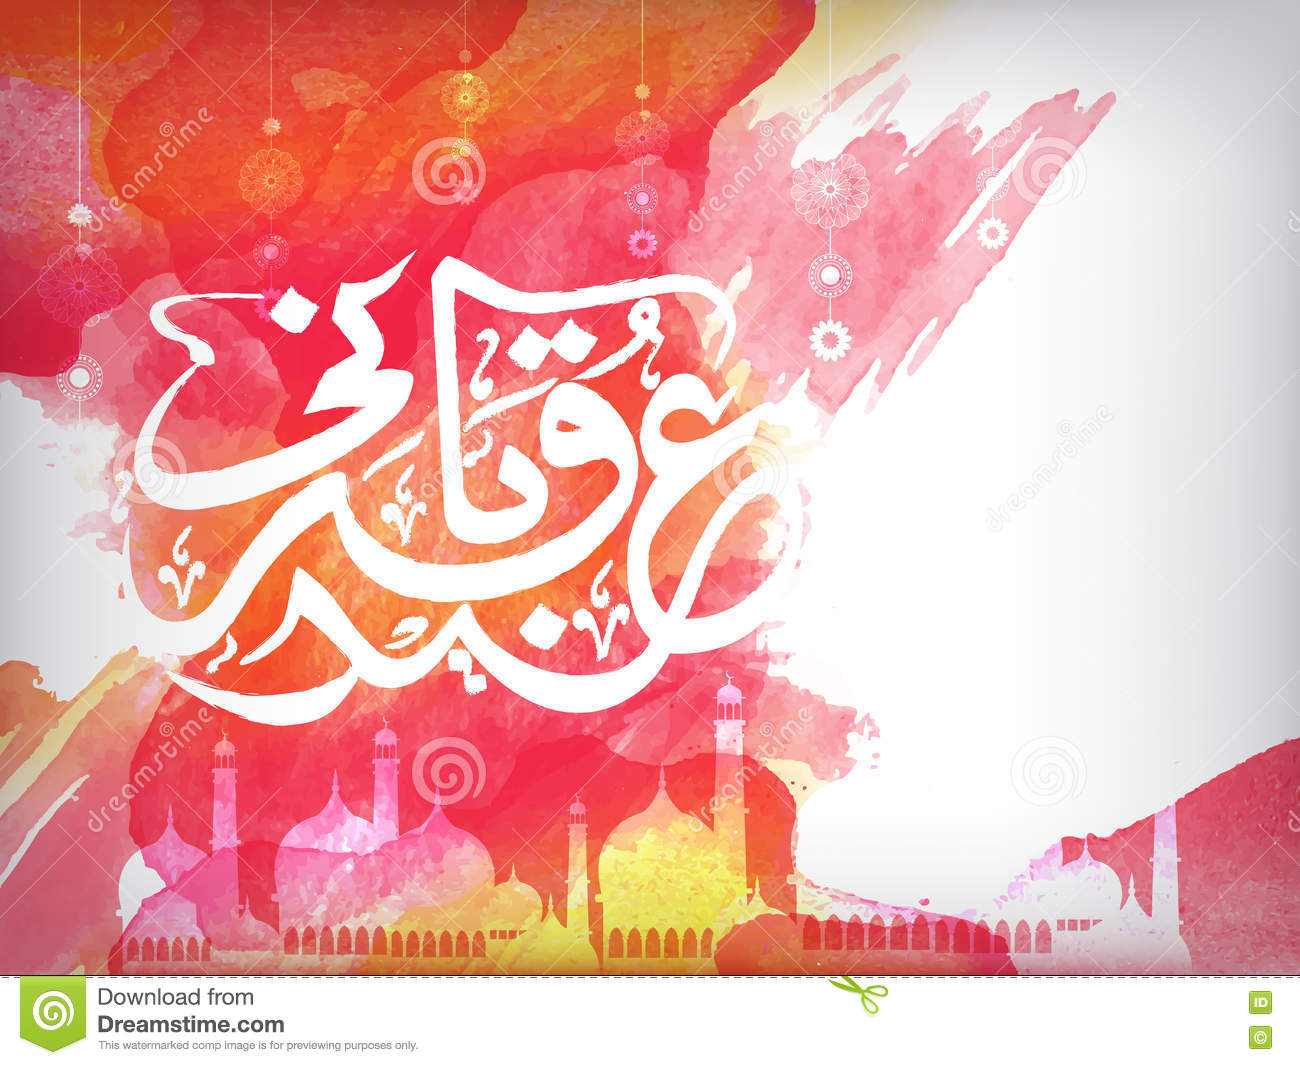 Arabic Calligraphy For Eid Al Adha Mubarak Stock Illustration